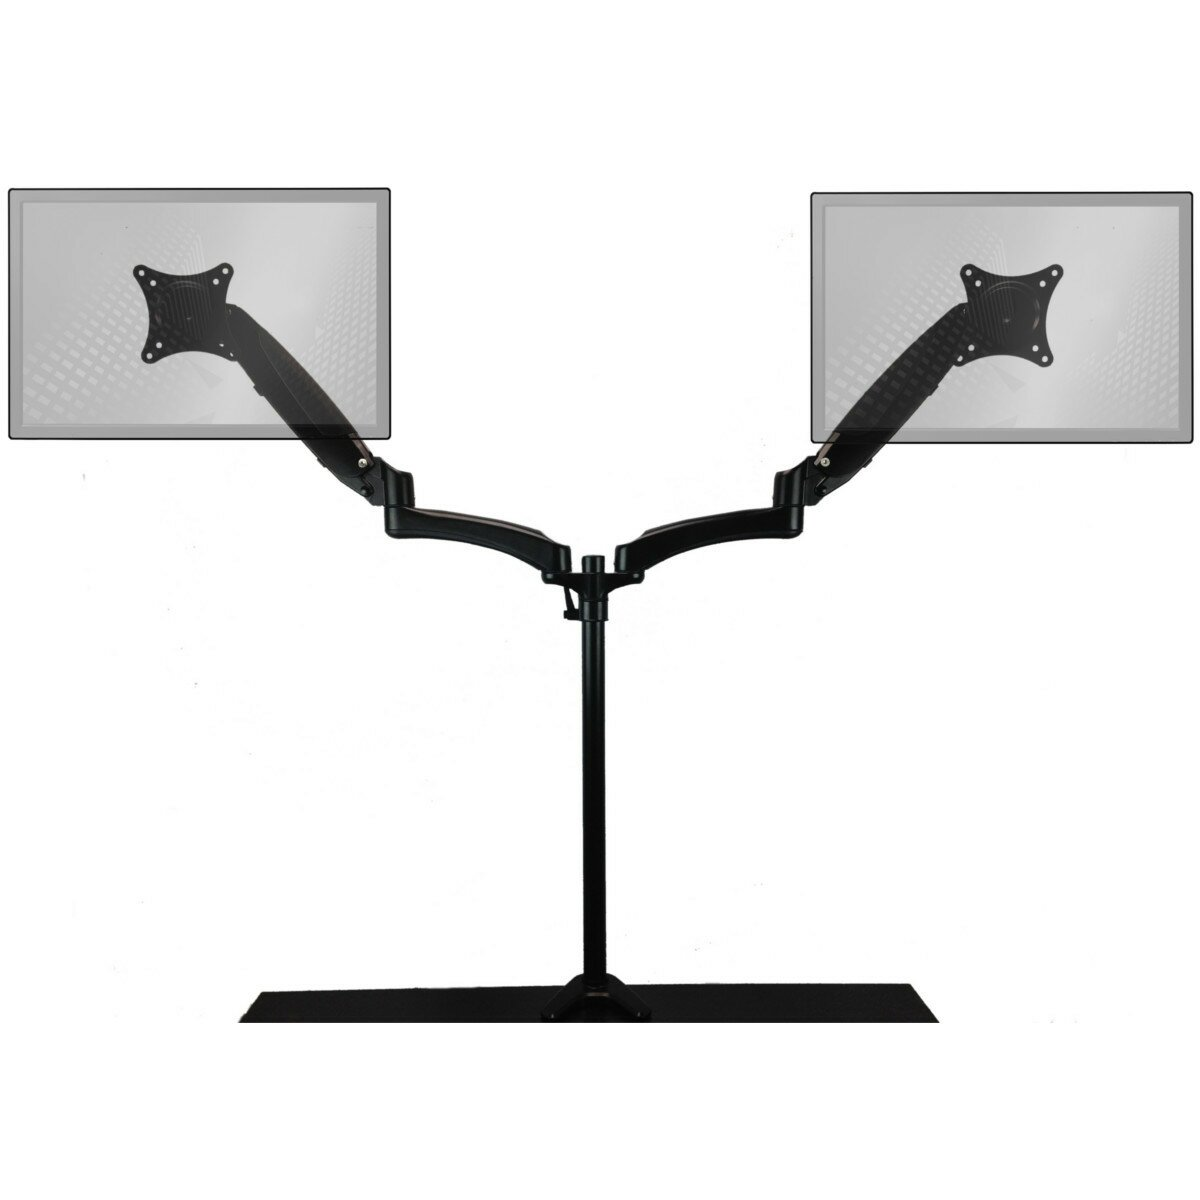 Home Concept SitStand Extended AirAssist Monitor Arm Height